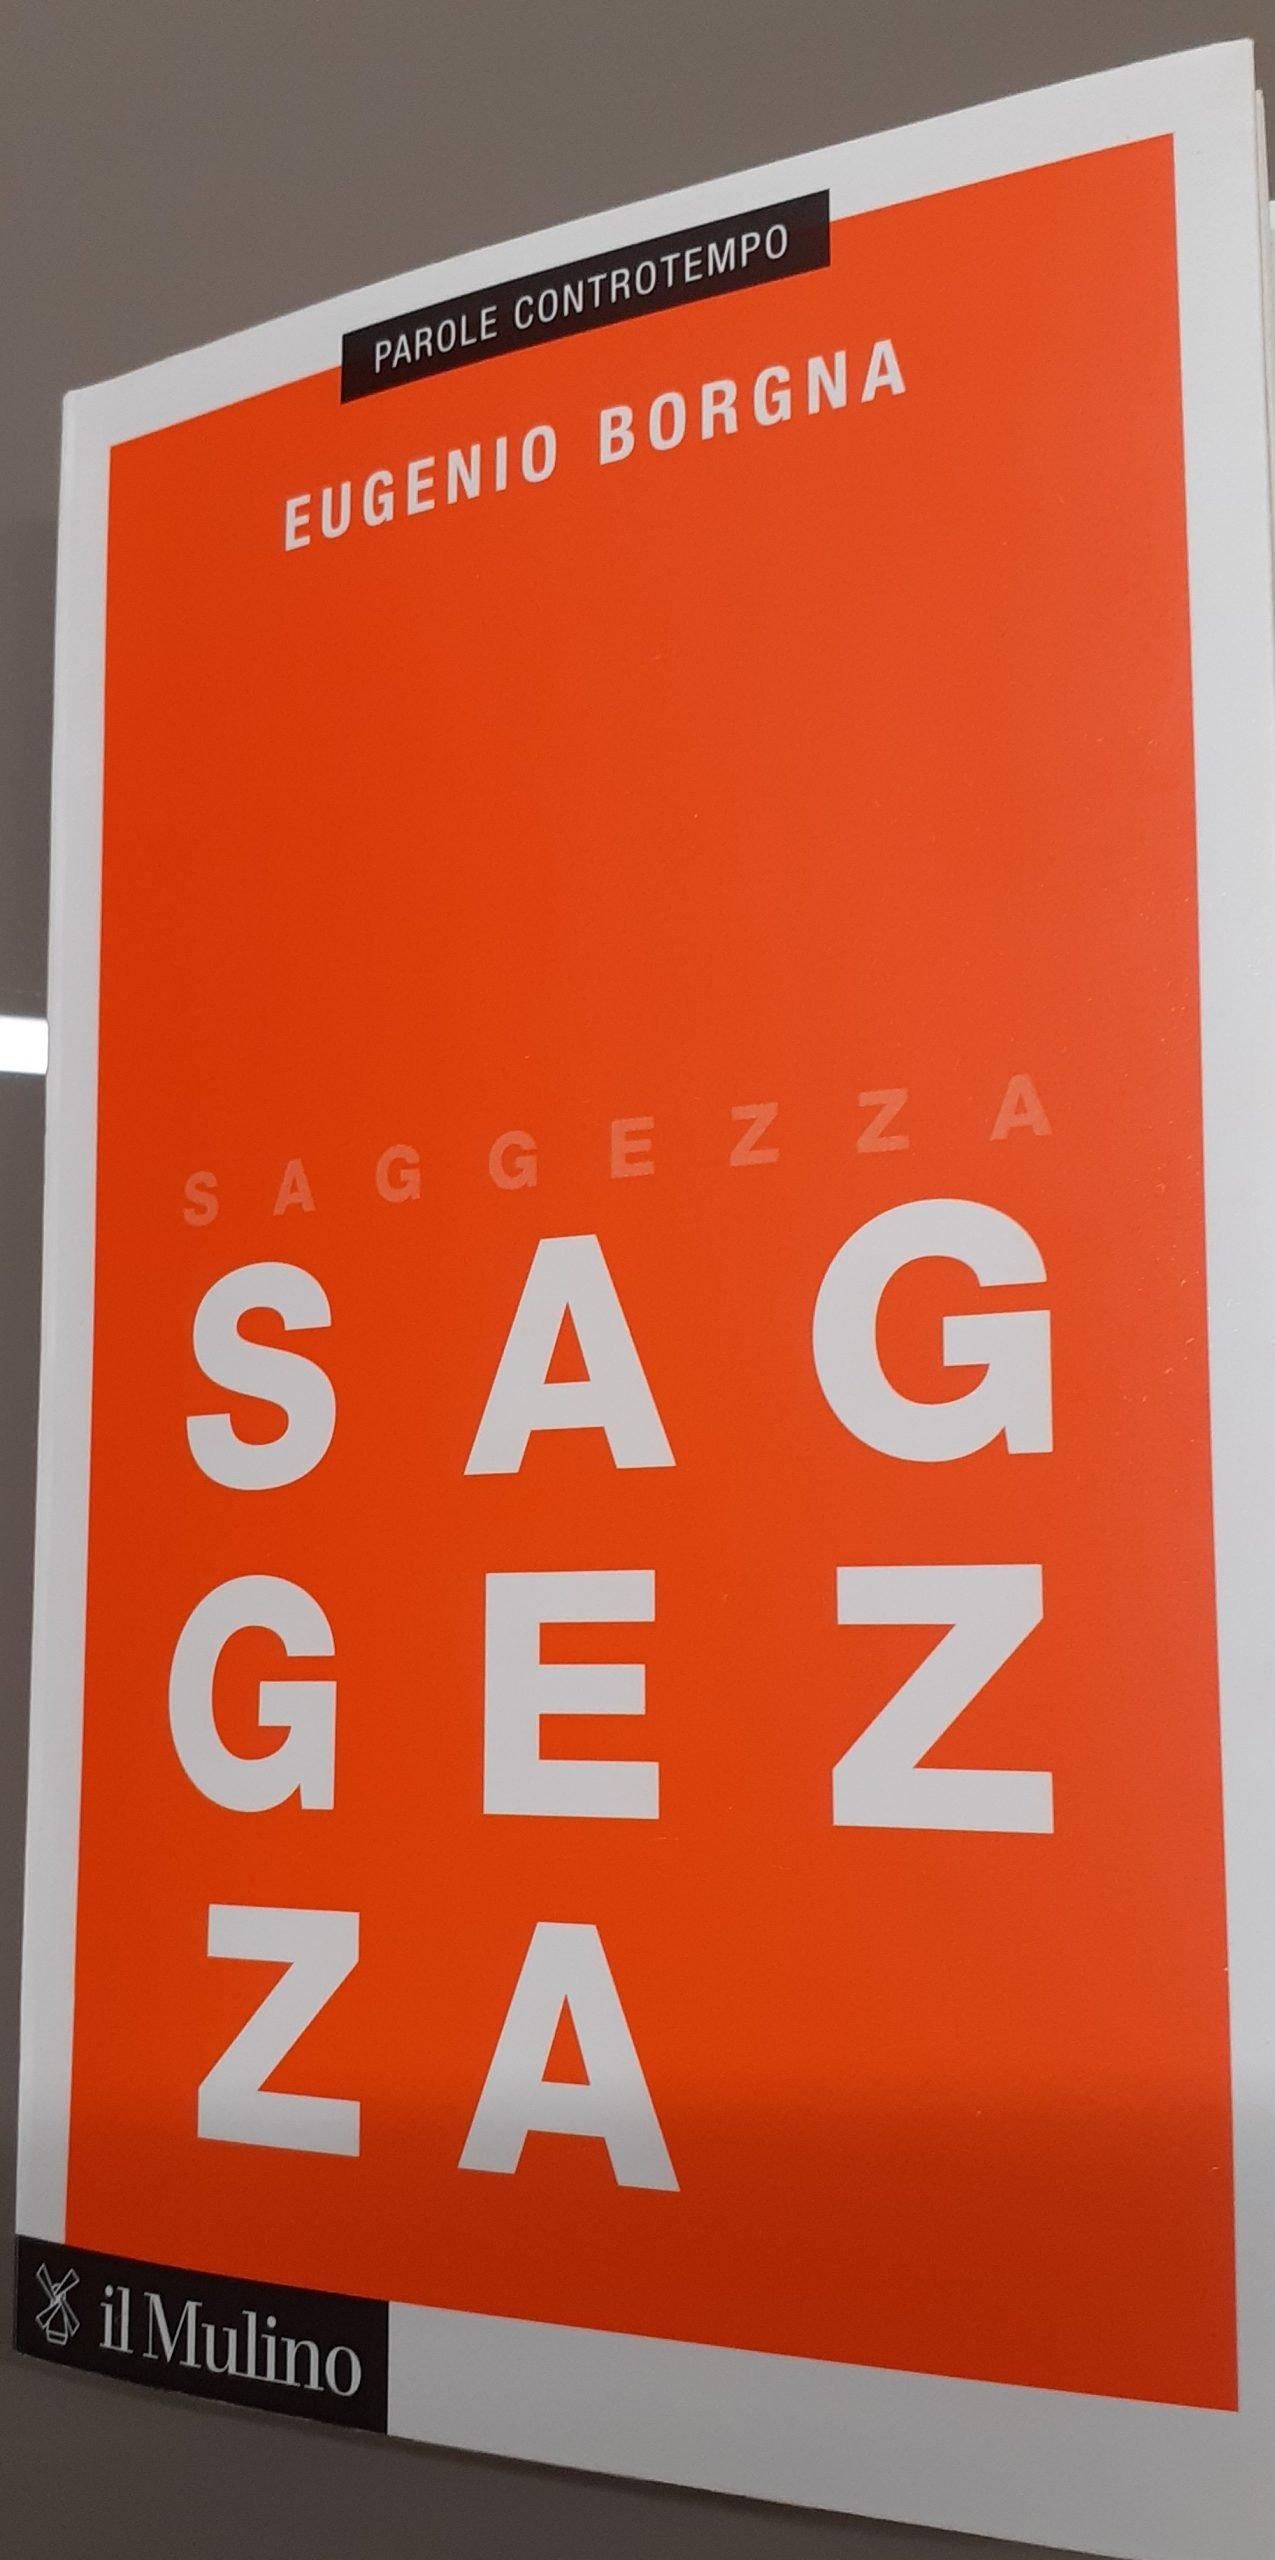 Saggezza!